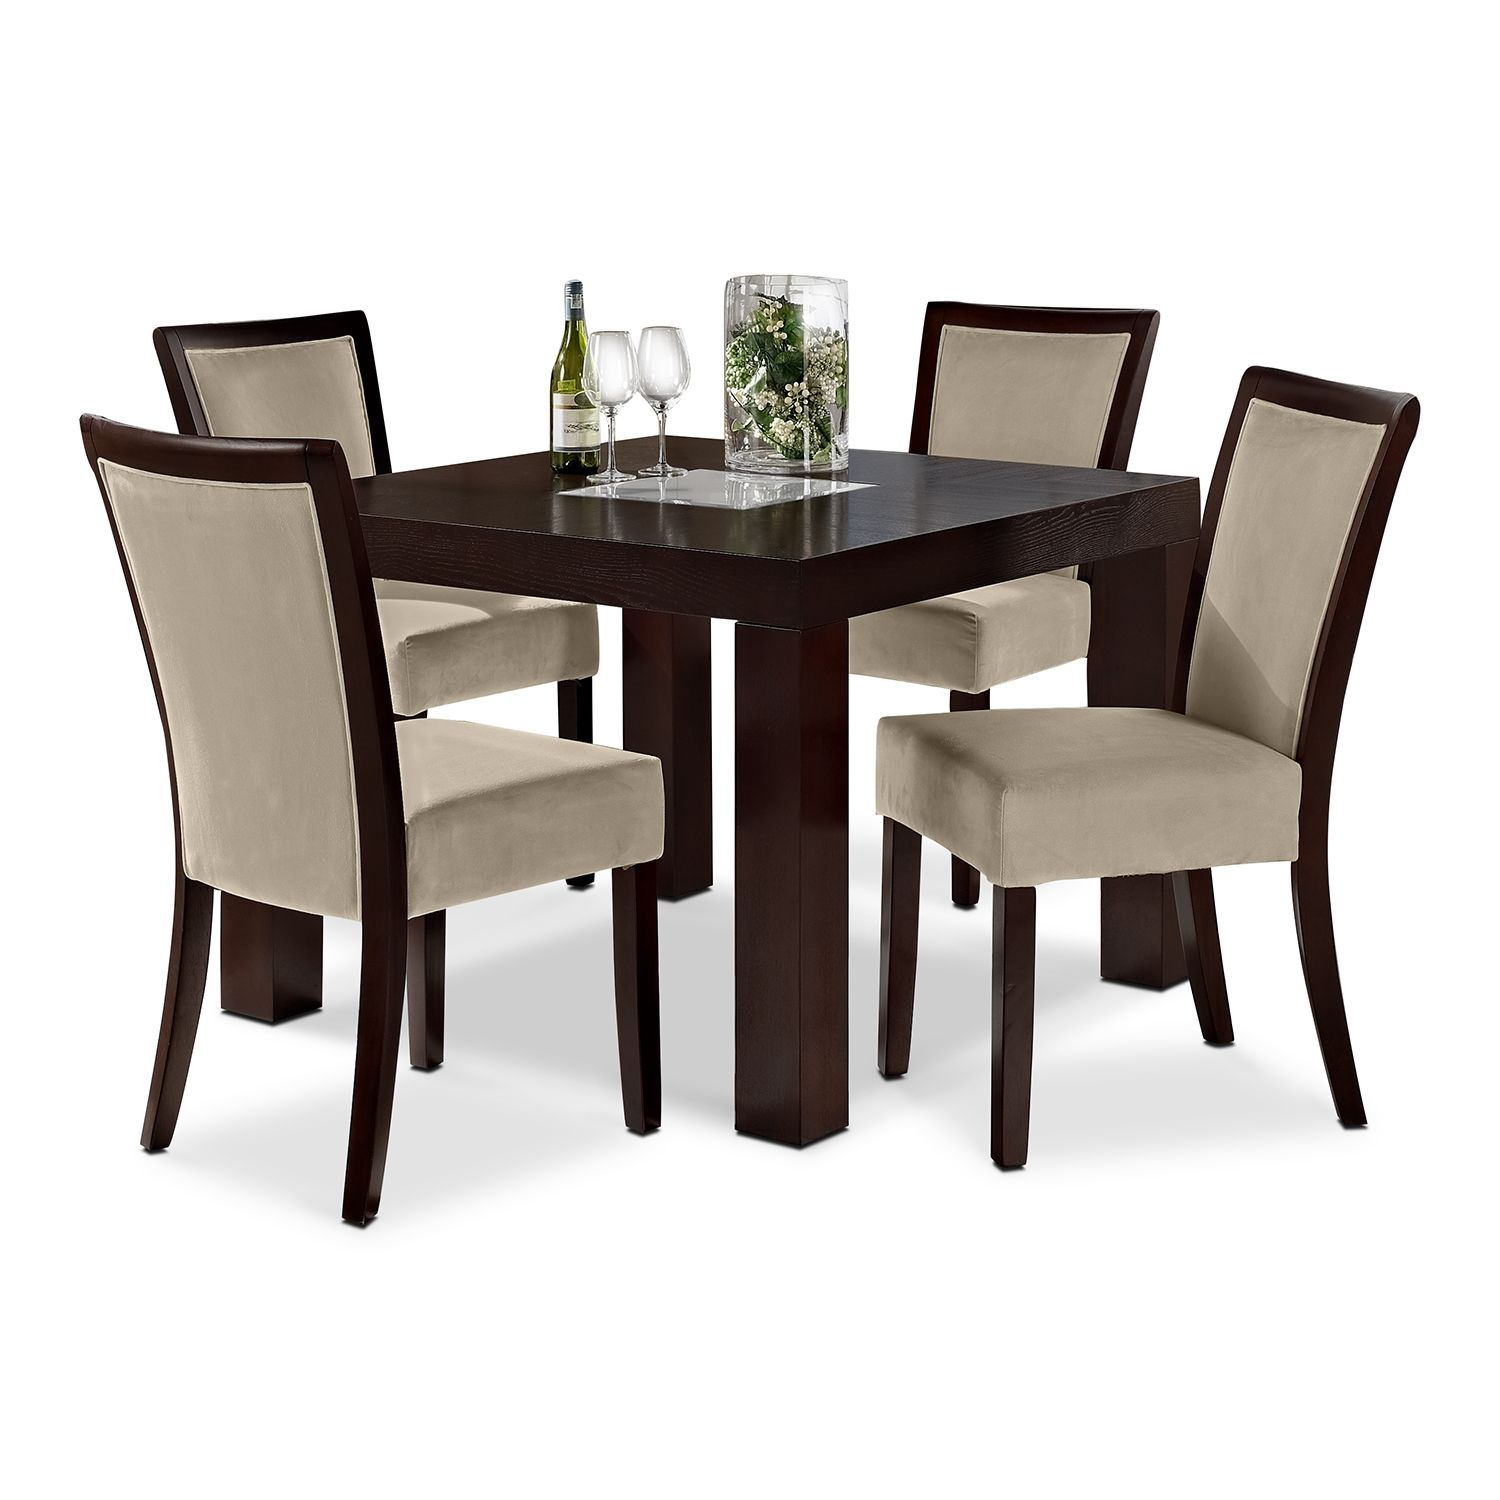 Tango Stone 5 Pc Dinette 42 Table Dining Room Sets Cheap